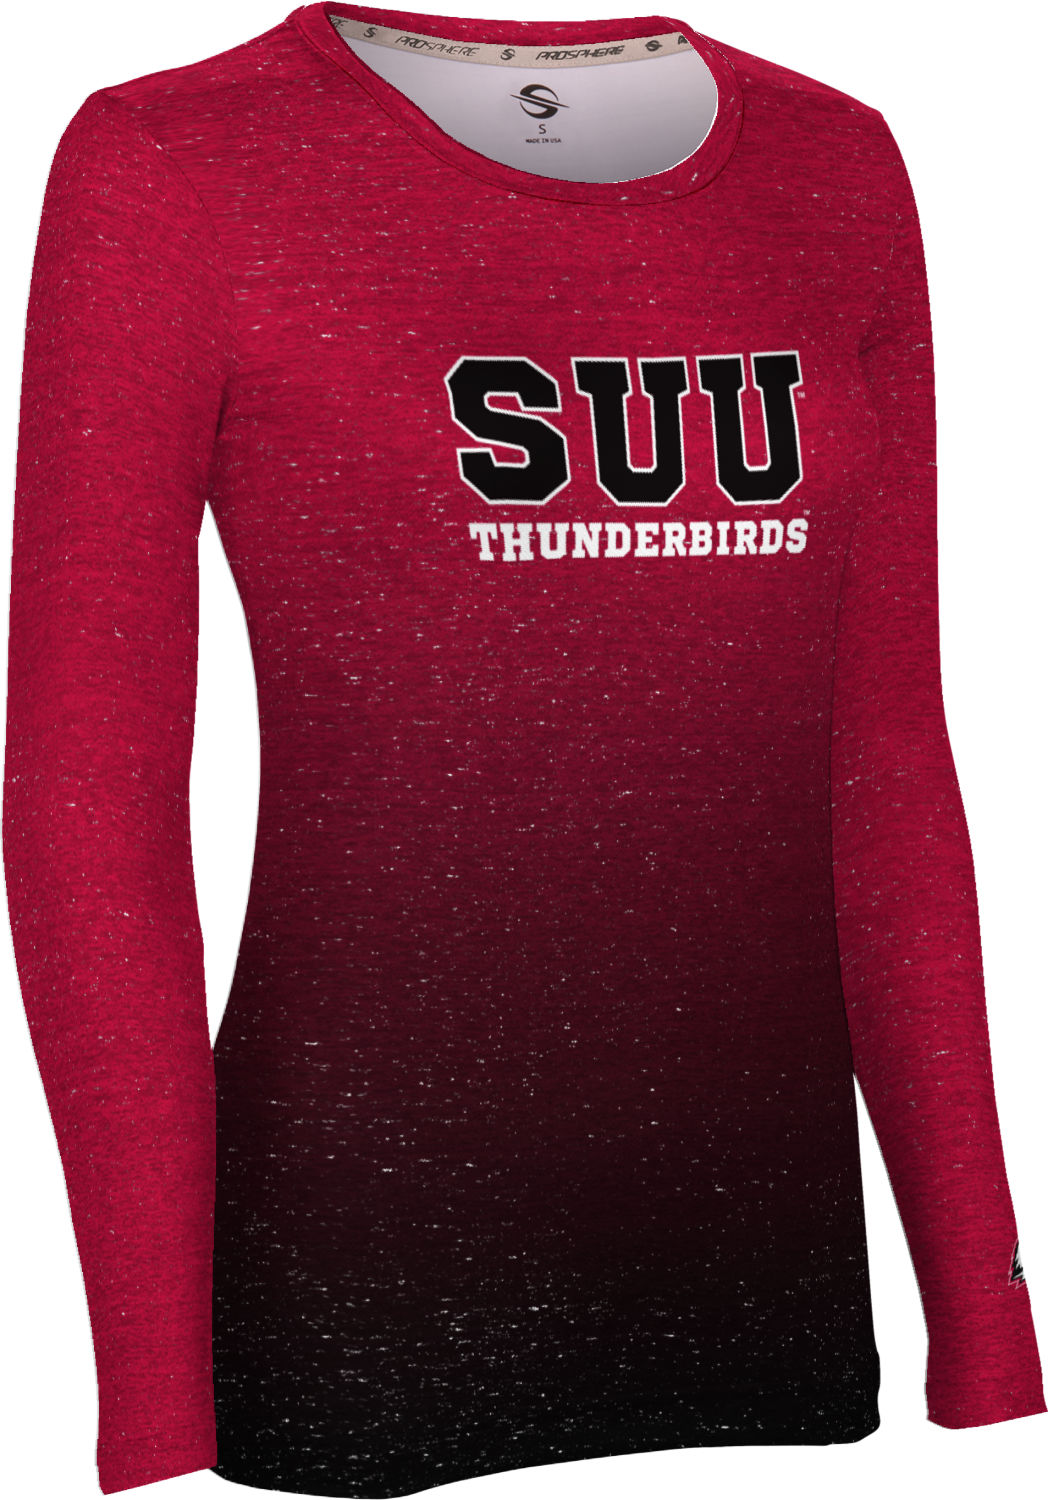 Southern Utah University: Women's Long Sleeve Tee - Ombre